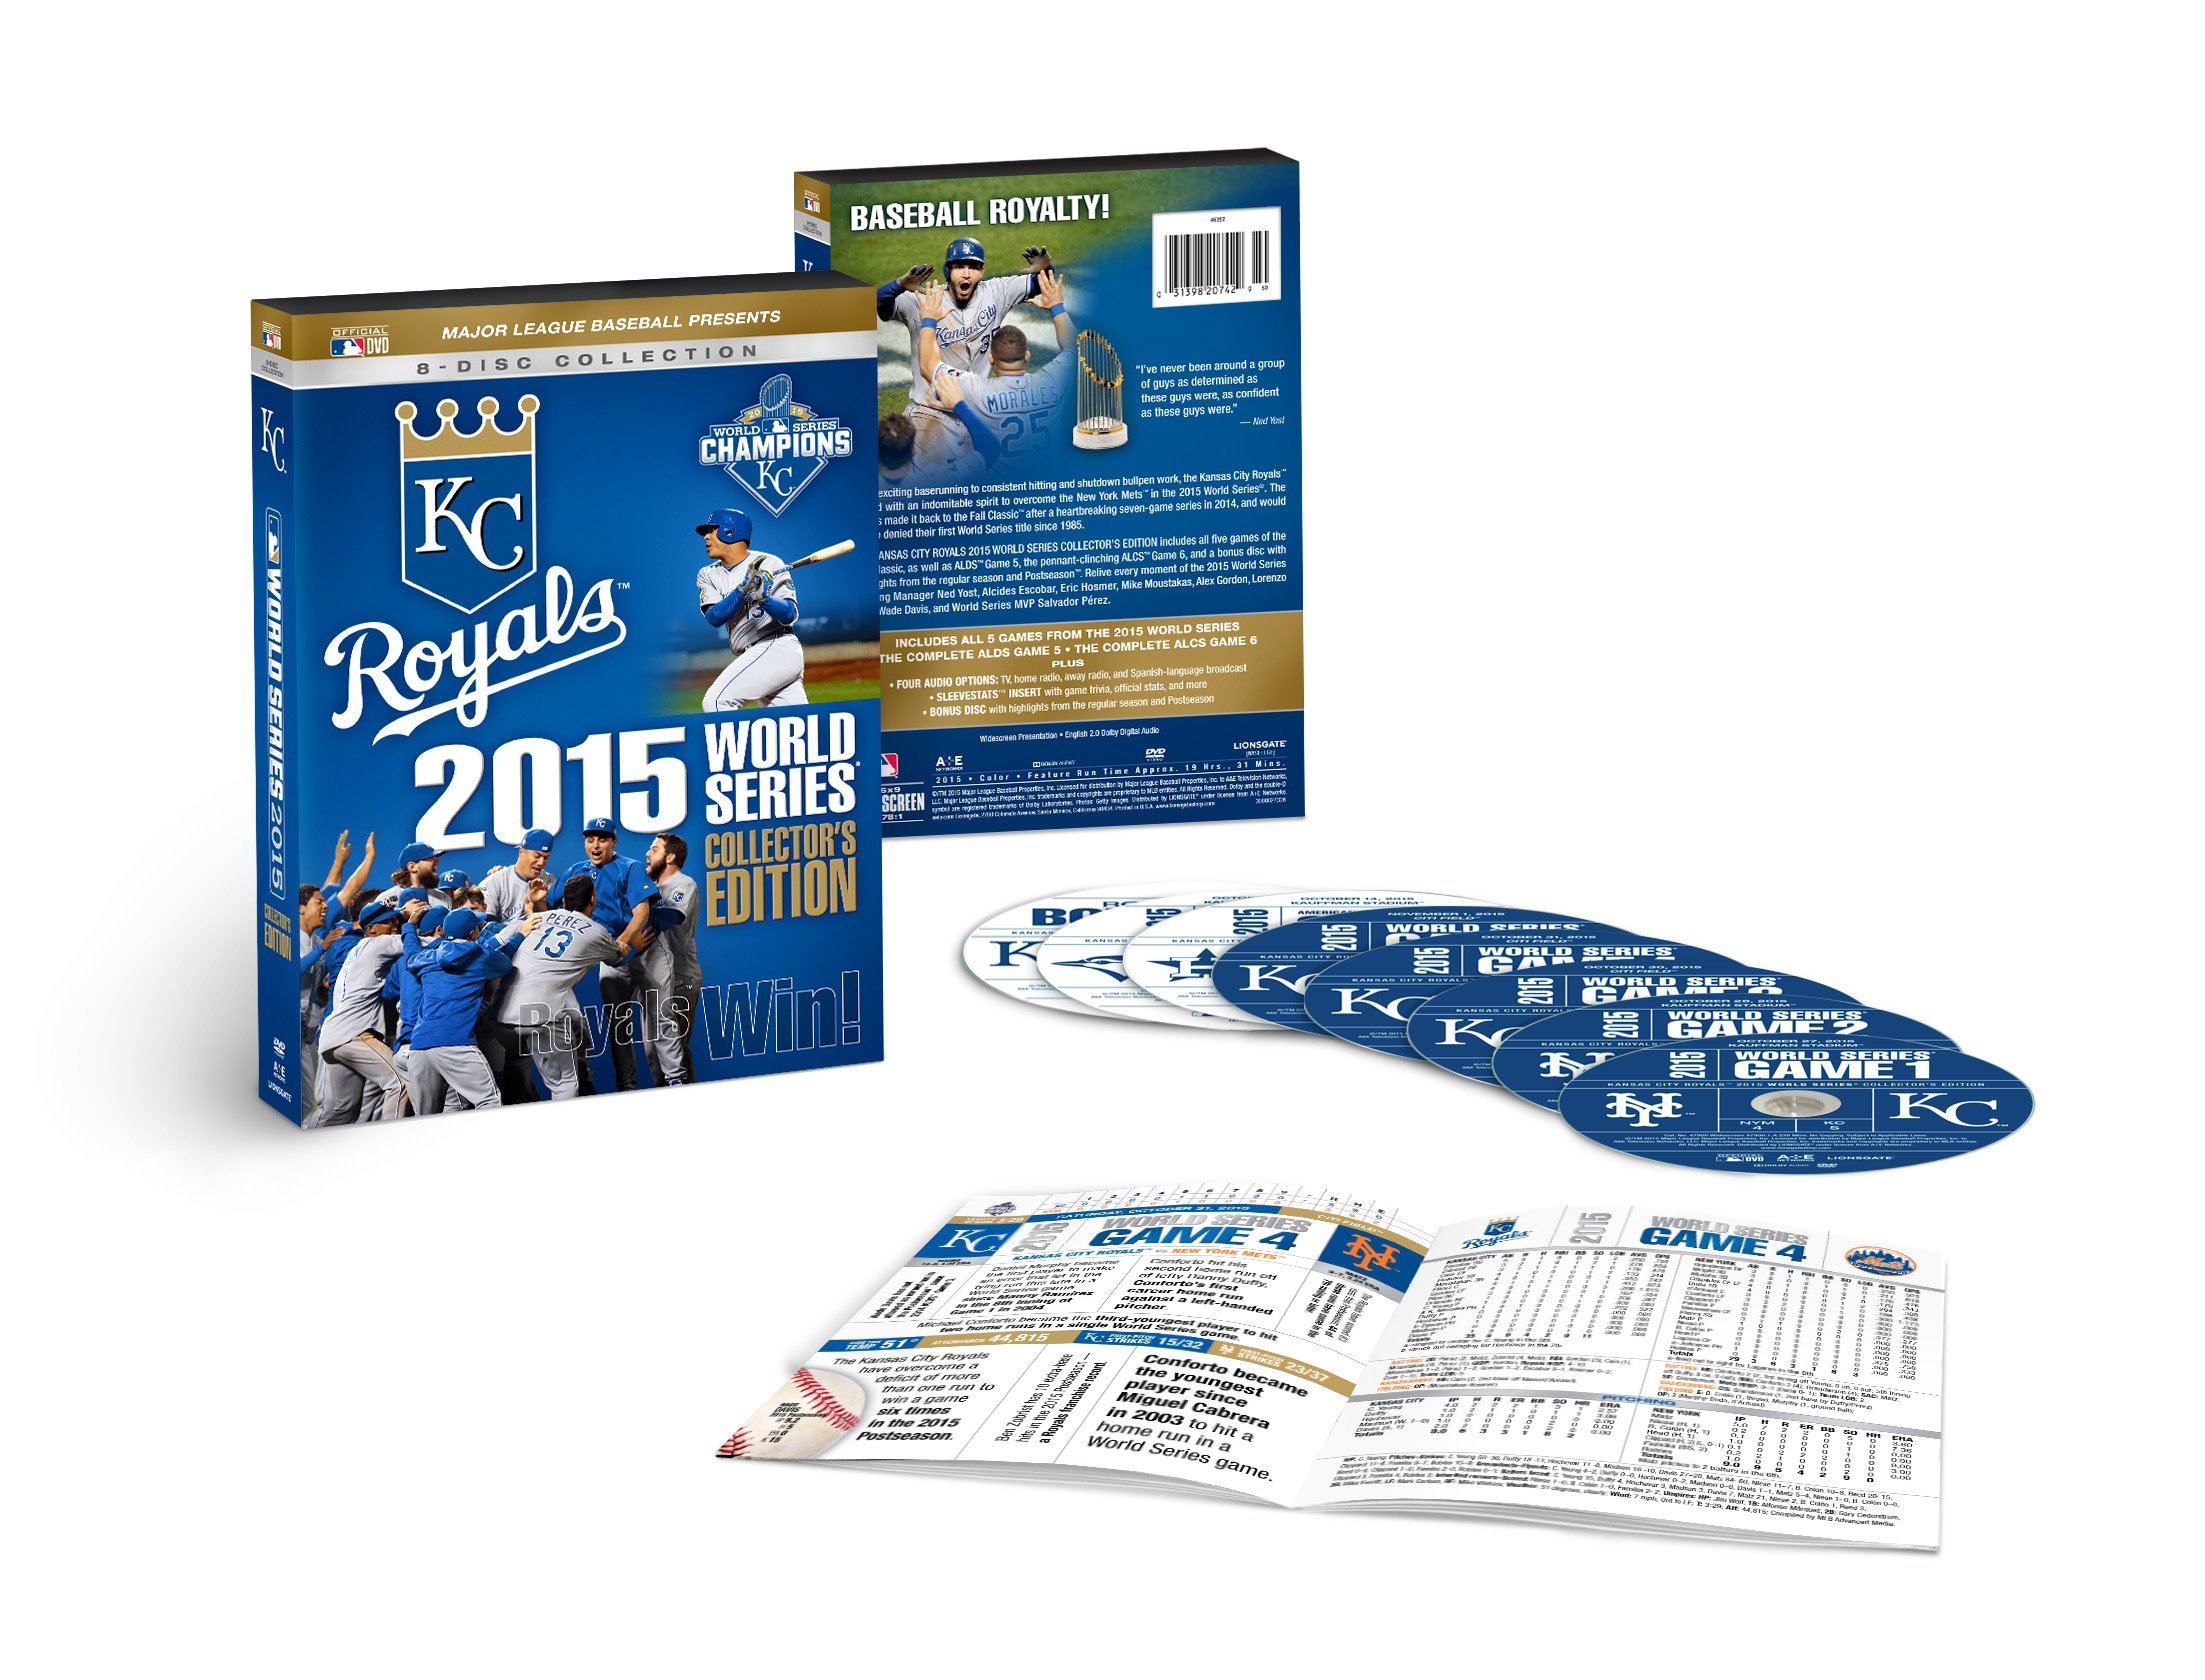 2015 World Series Collection [DVD] by Lionsgate